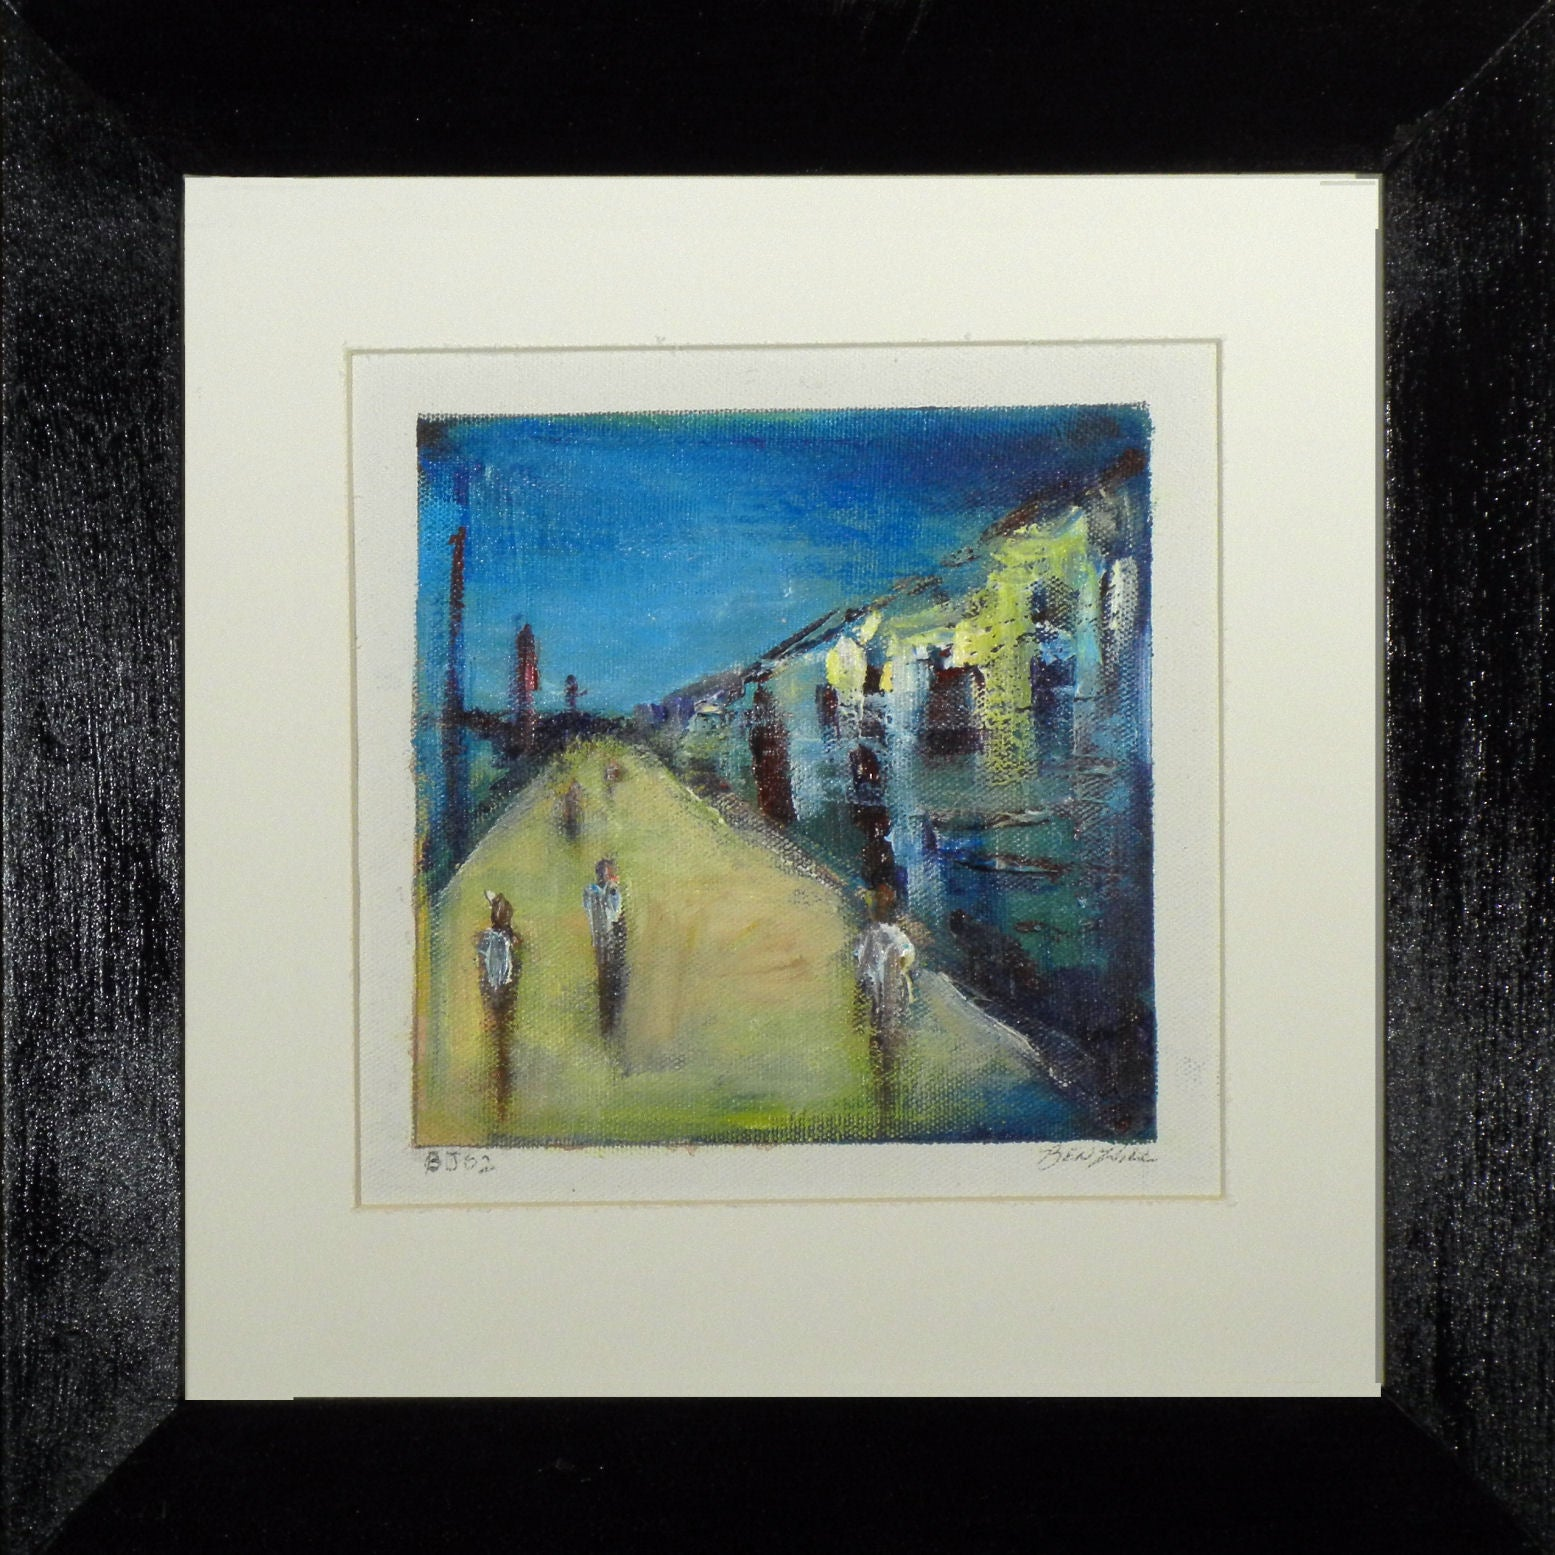 Framed Small Painting BJ02